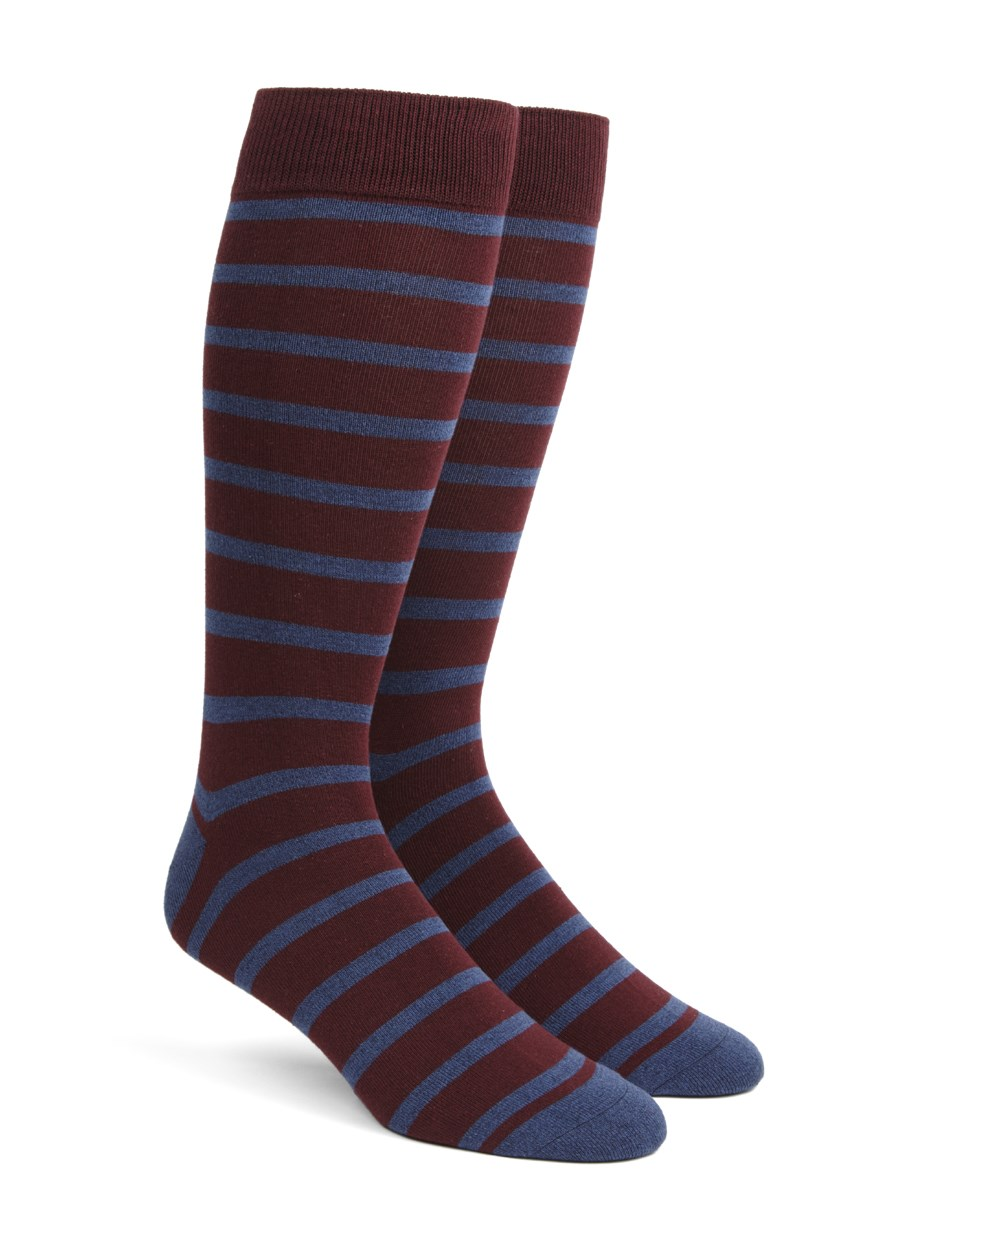 Trad Stripe - Wine - Men's Shoe Size 7-12 - Socks